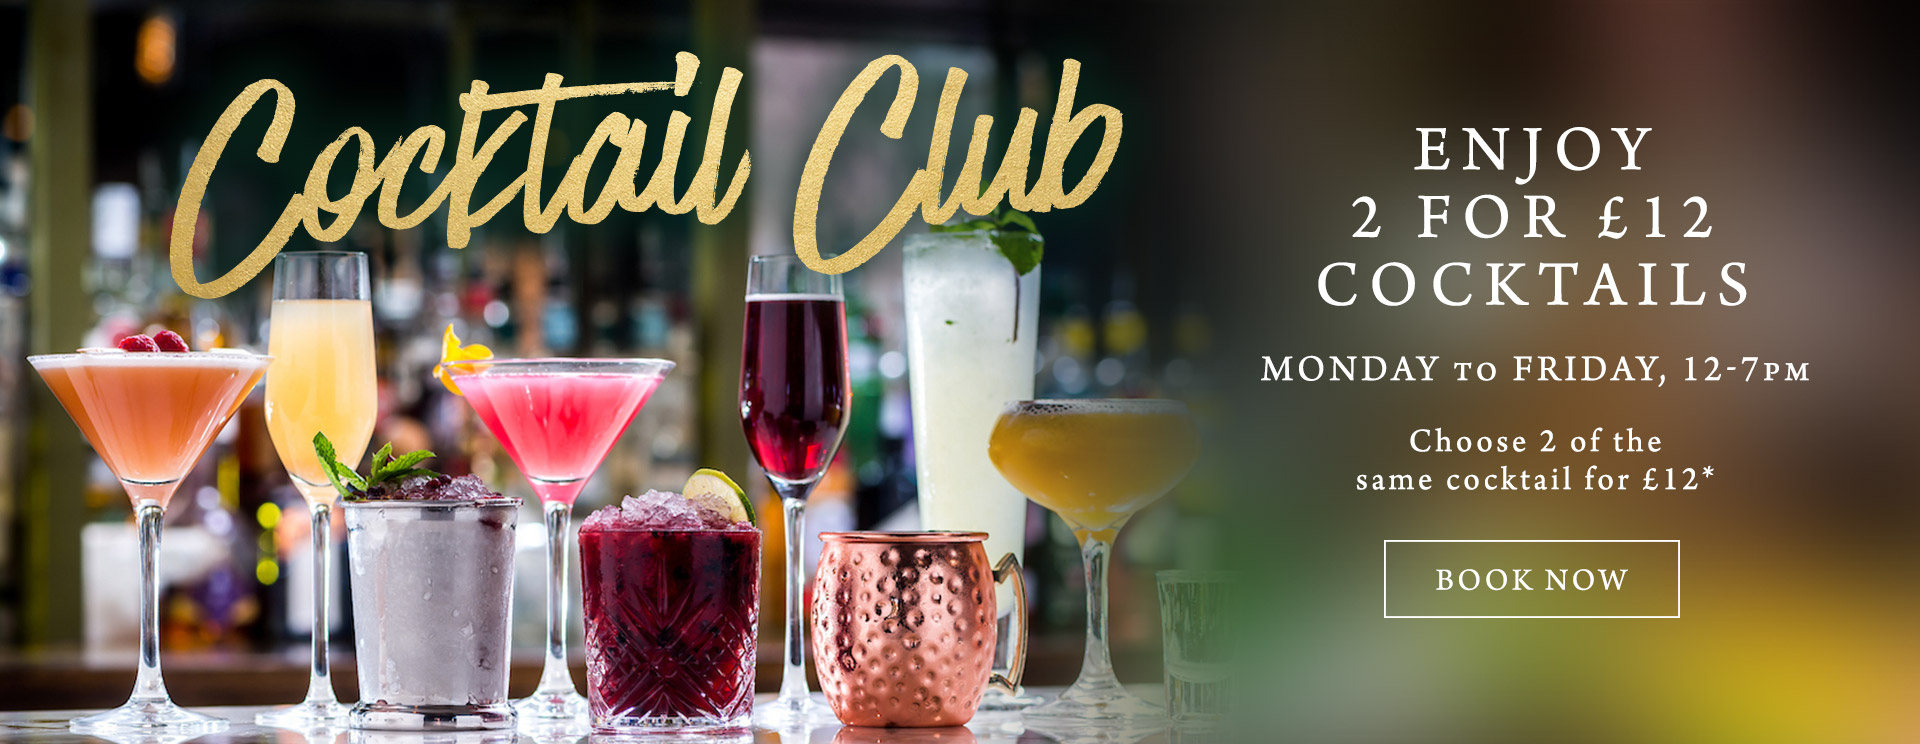 2 for £12 cocktails at The Cock Inn